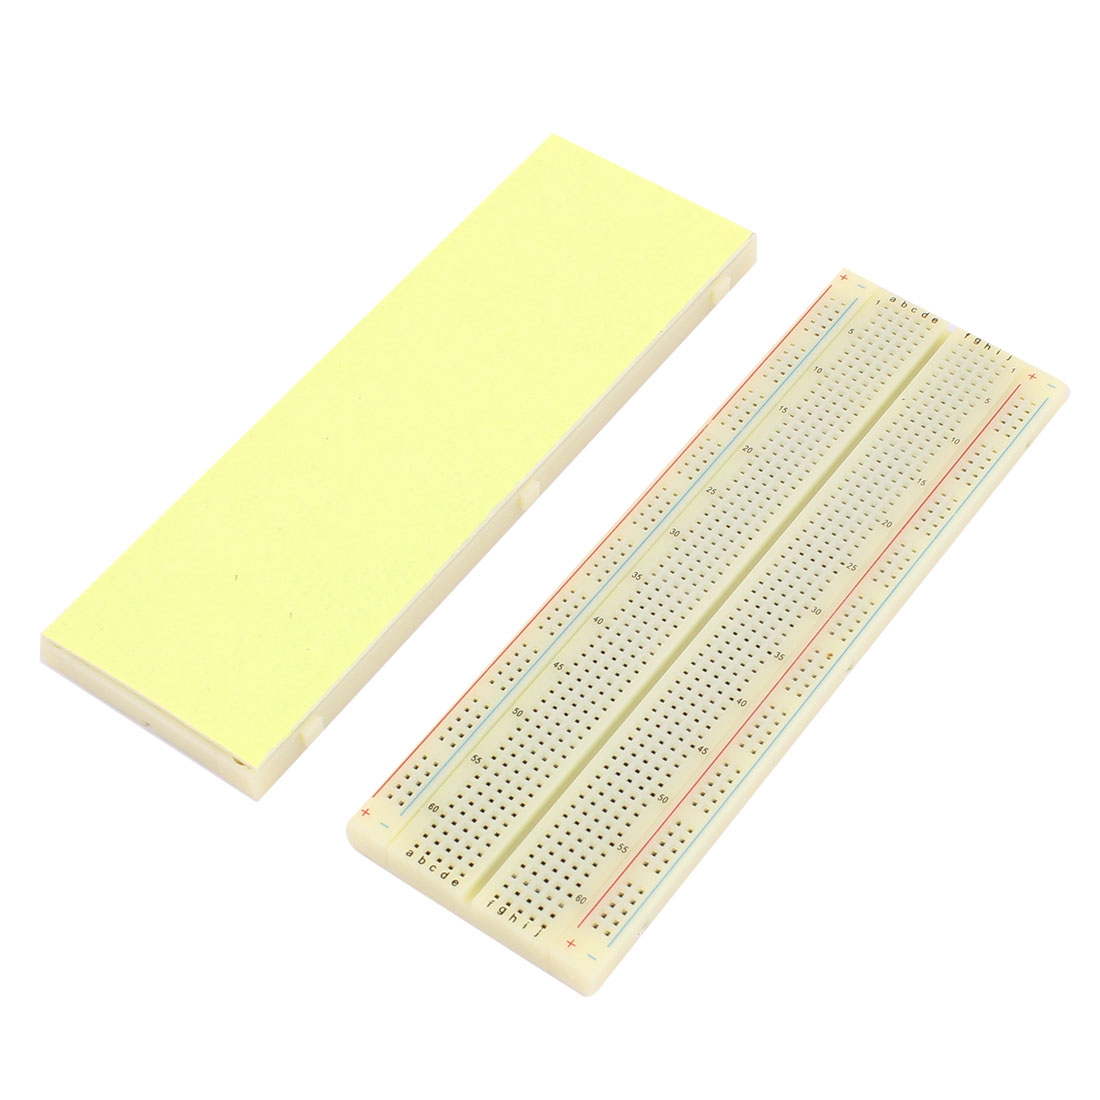 2Pcs MB-102 830 Point Solderless Breadboard PCB Test Bread Board